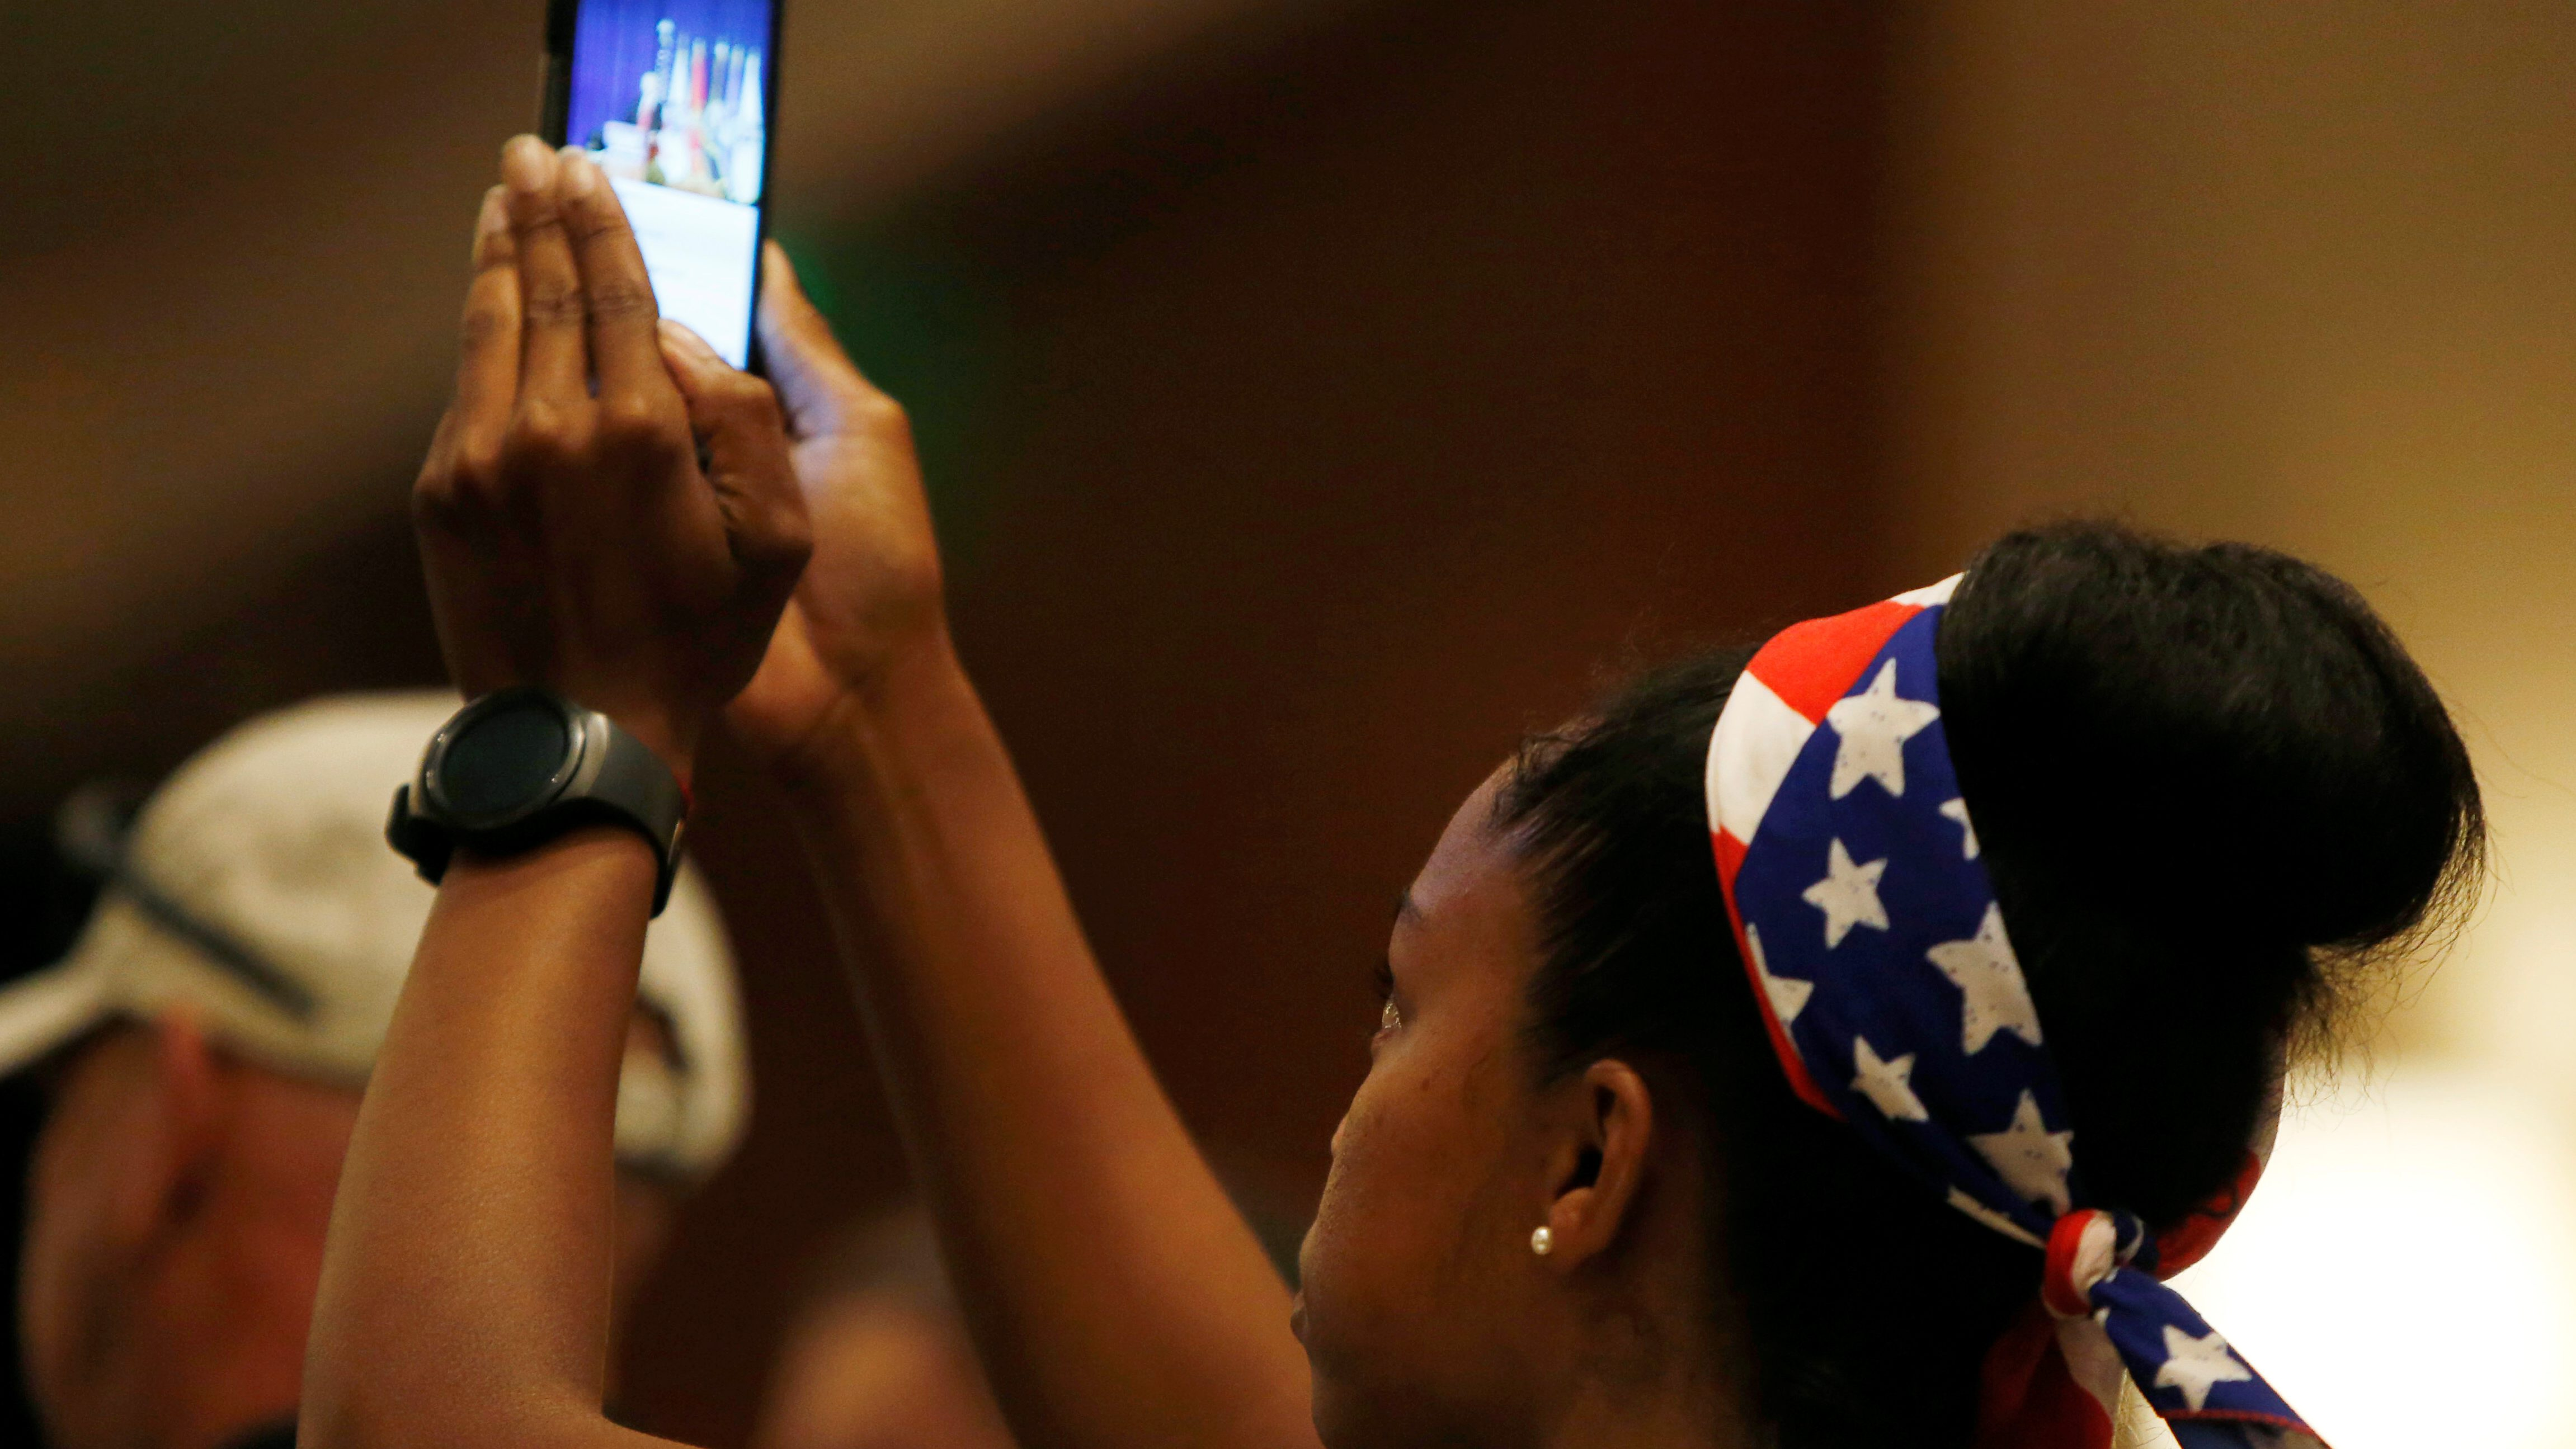 A young girl takes a photo of presumptive Republican presidential nominee Donald Trump (not pictured) during a speech in Virginia Beach, Virginia U.S. July 11, 2016.  REUTERS/Gary Cameron - S1AETOZYPLAA